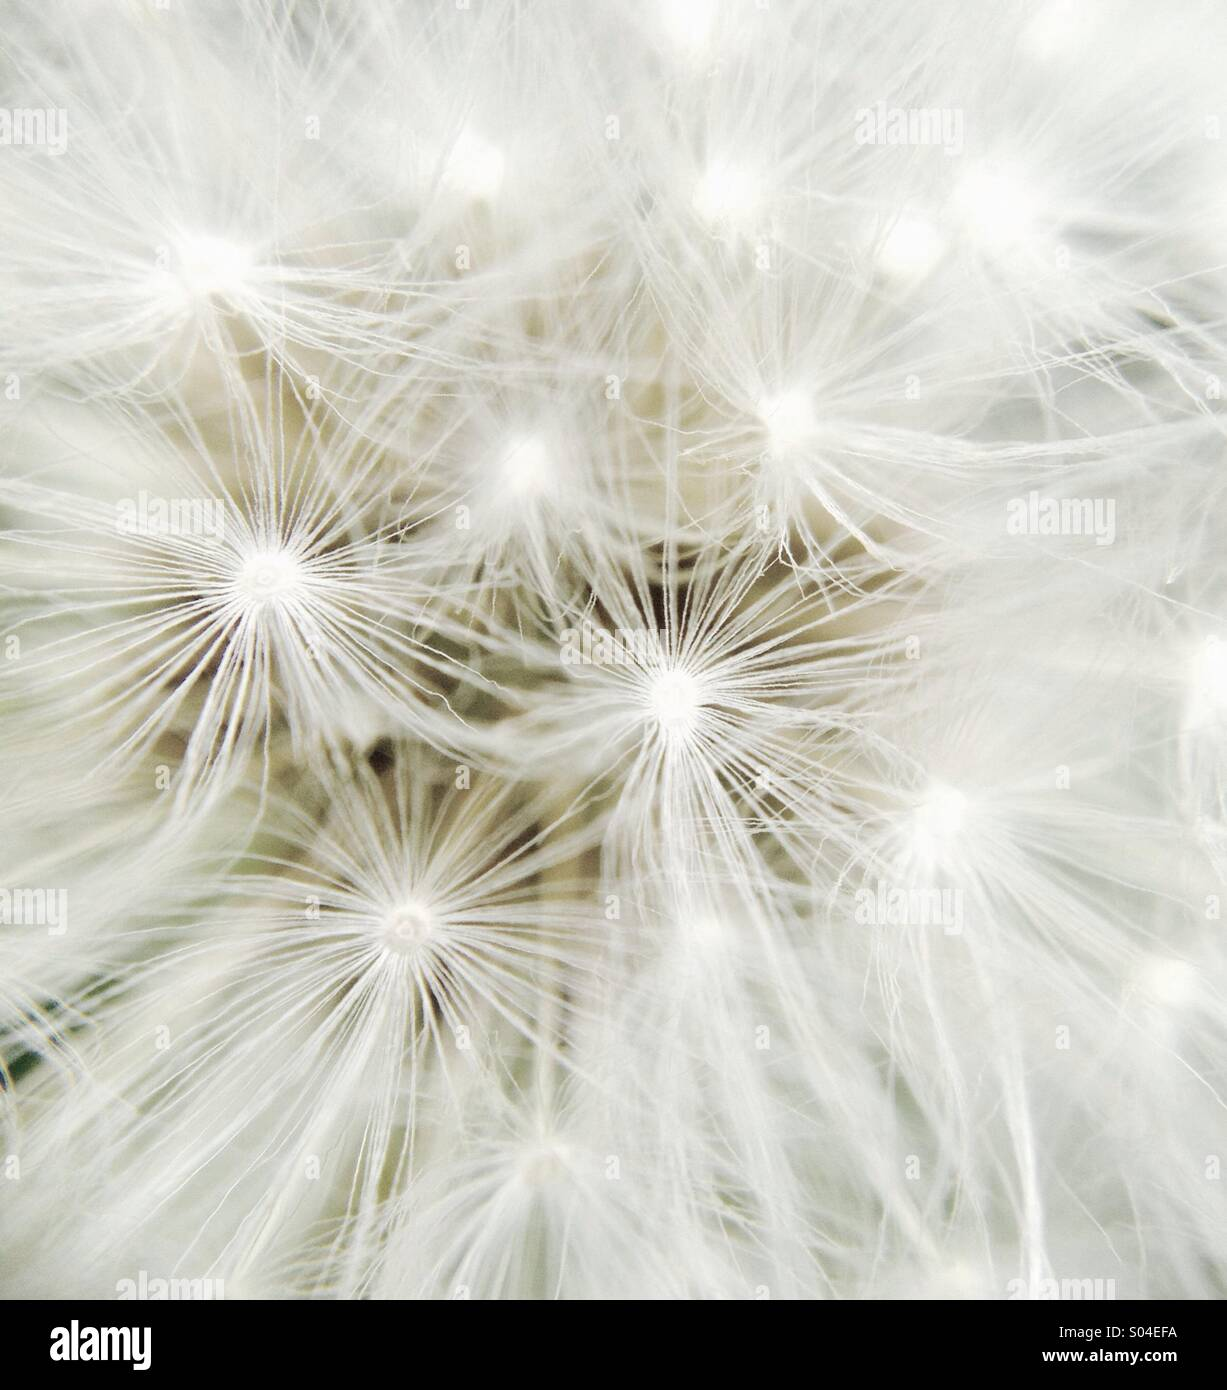 Dandelions. Make a wish and blow flowers. - Stock Image